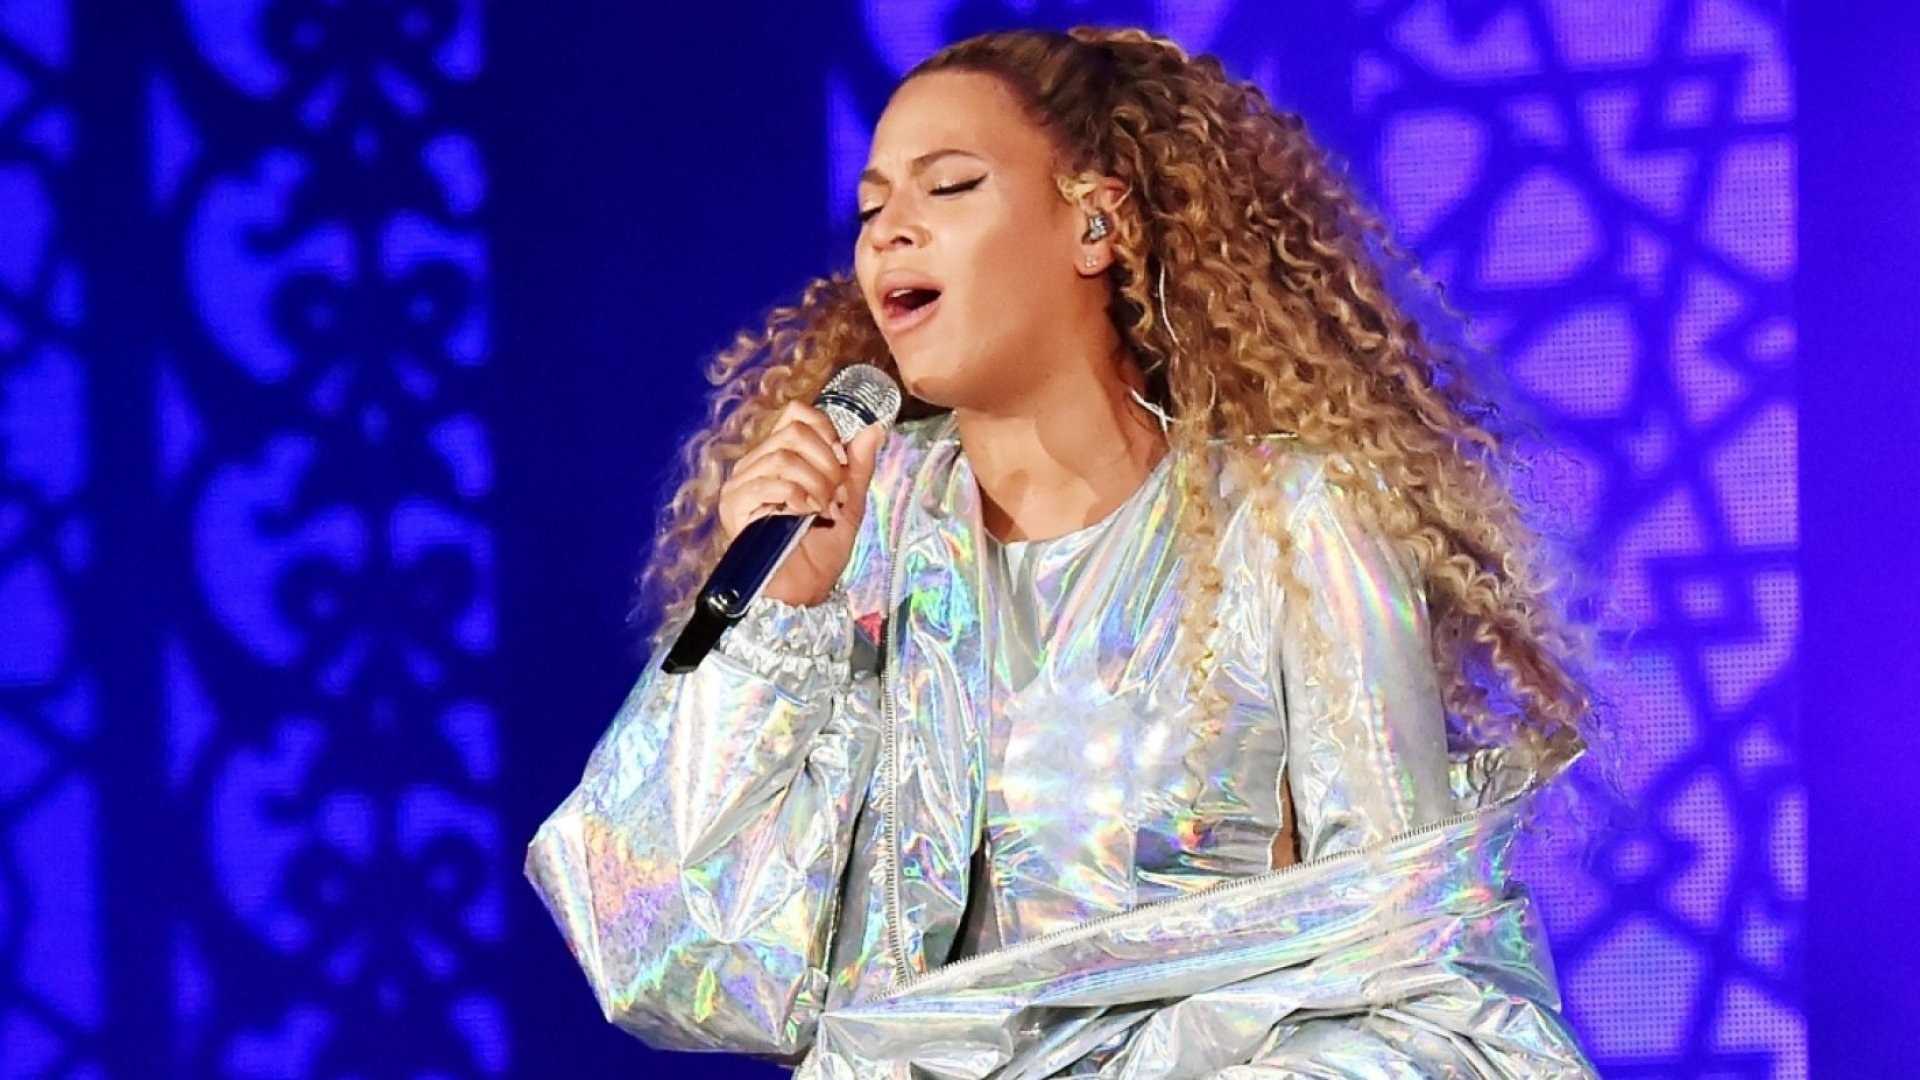 Beyonce performs on stage during the 'On the Run II' tour opener at Principality Stadium on June 6, 2018